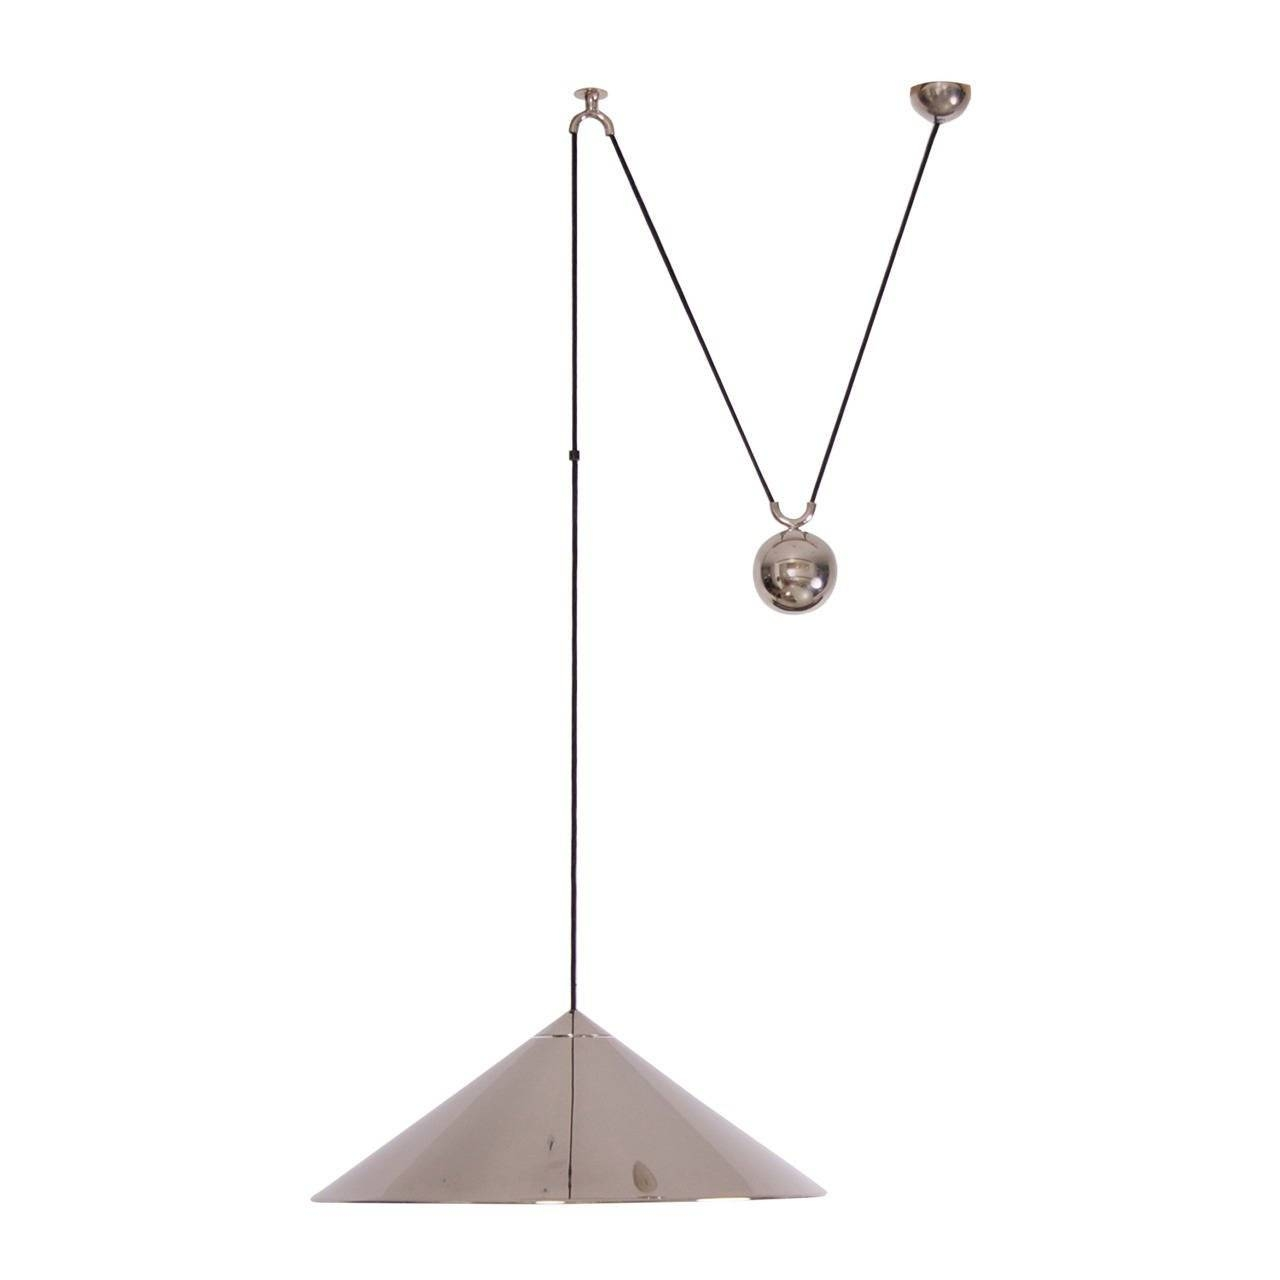 Florian Schulz Keos Extra Large Counterweight Pendant Lamp Nickel within Counterweight Pendant Lights (Image 8 of 15)